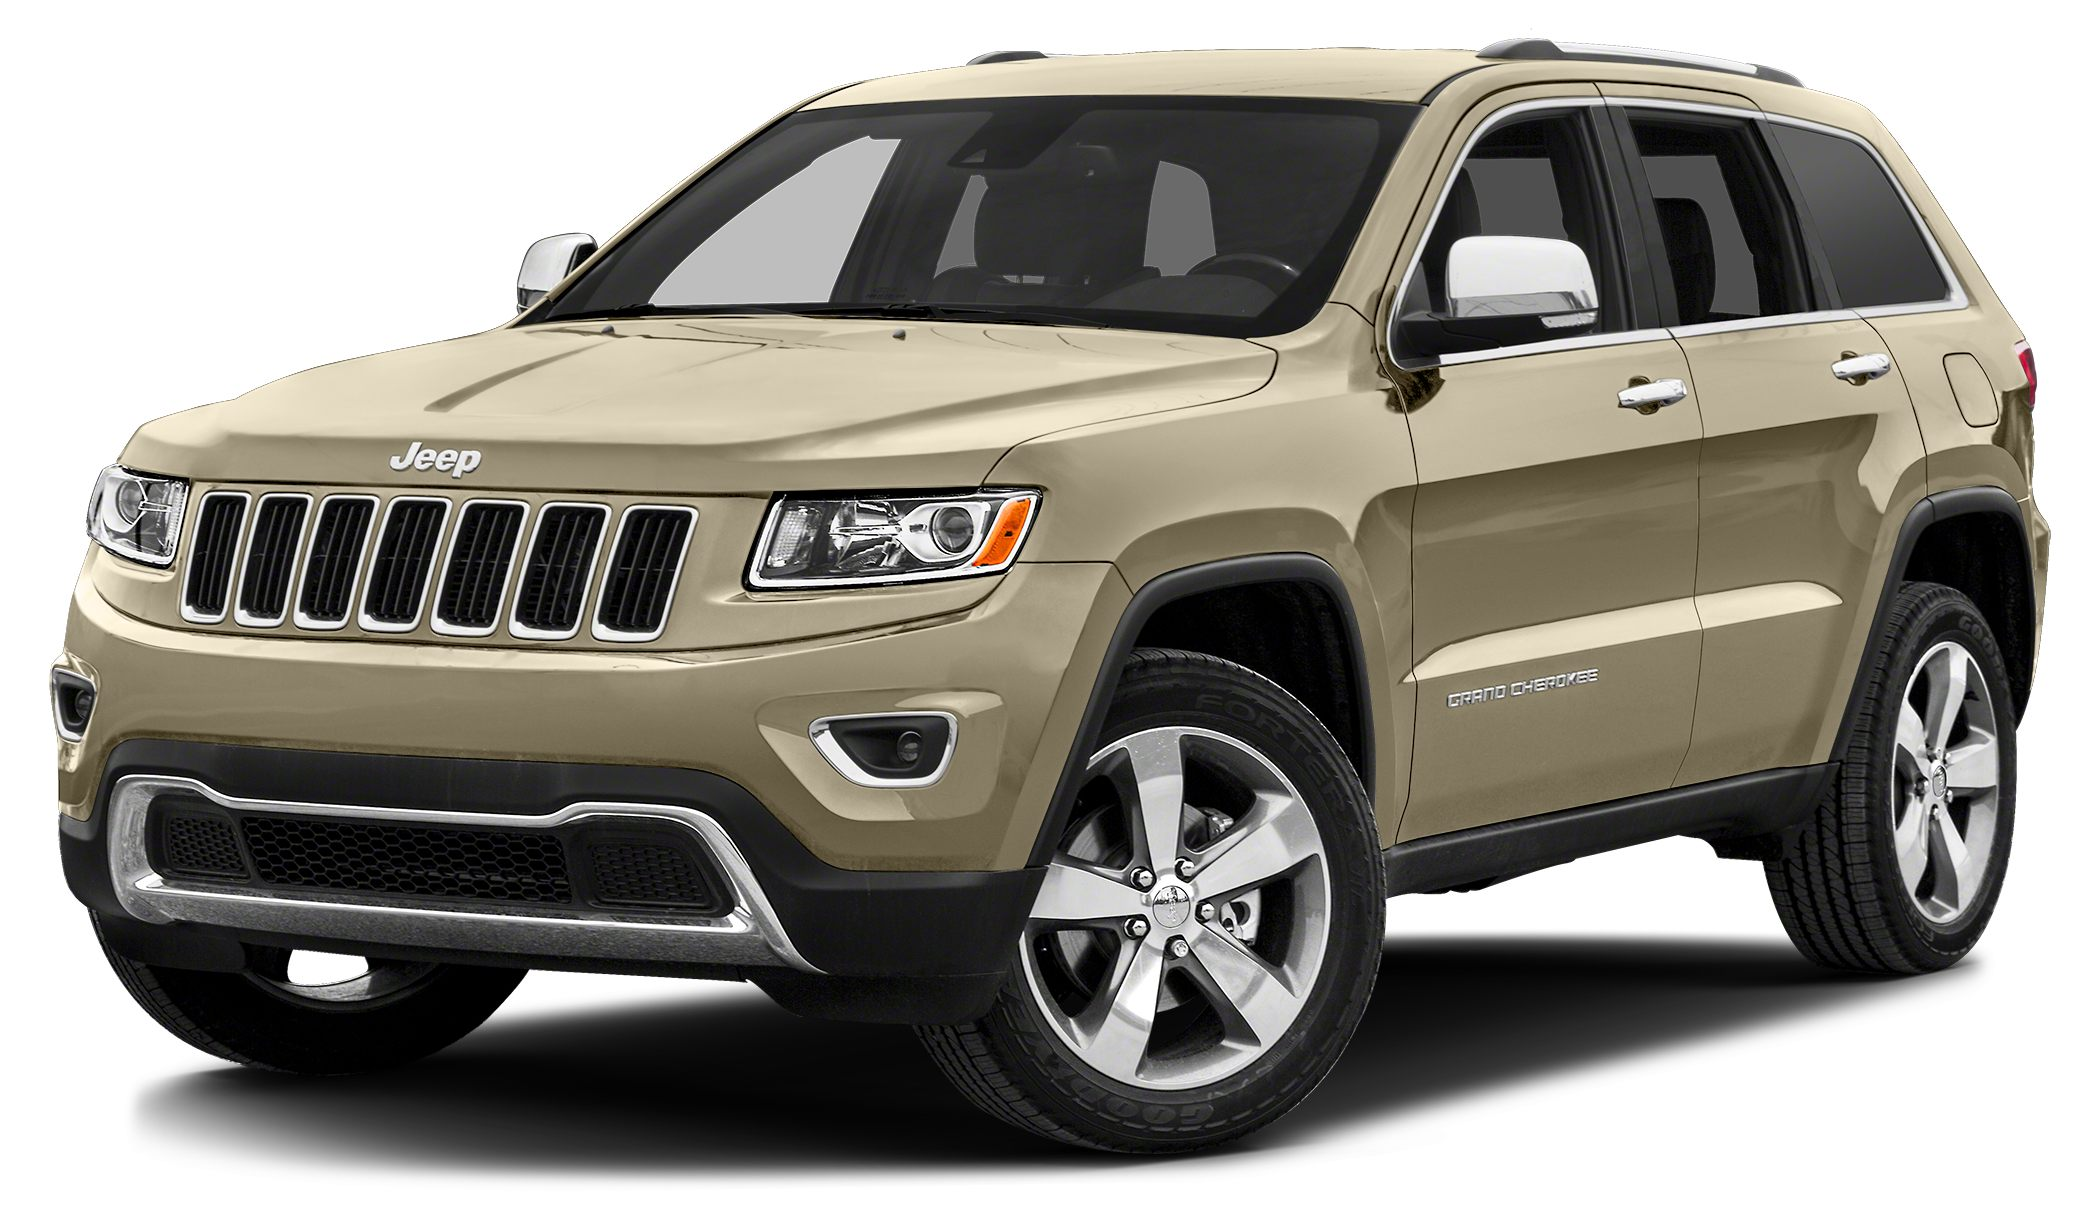 2014 Jeep Grand Cherokee Limited Recent Arrival Odometer is 20081 miles below market averageAwar